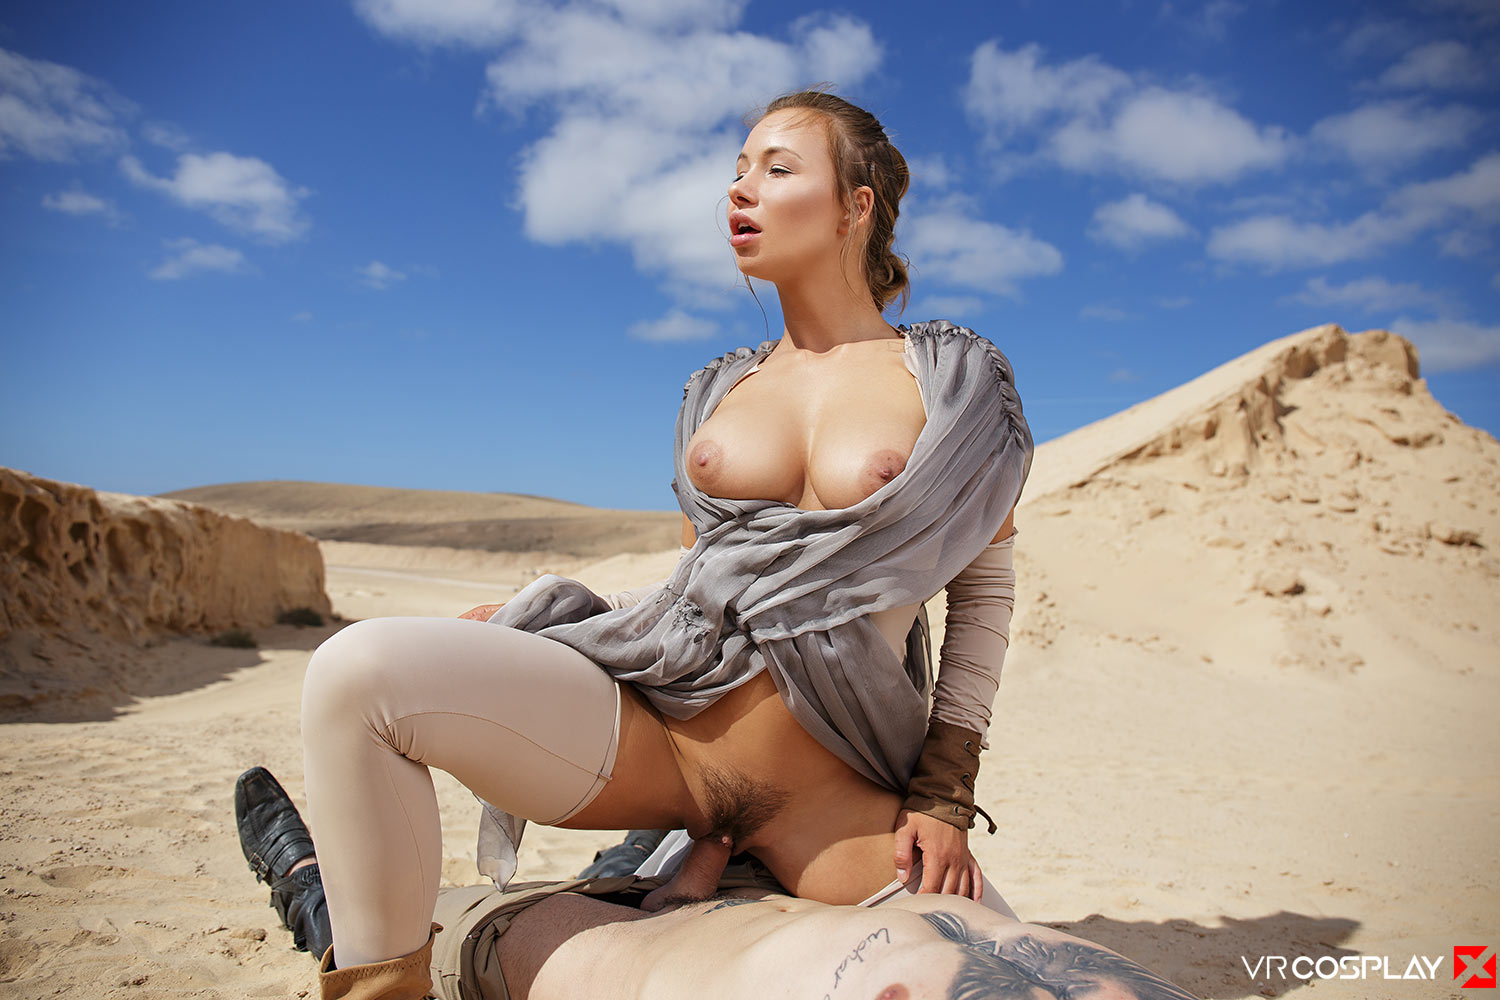 Star Wars Vr Porn Cosplay Starring Taylor Sands As Rey -2206